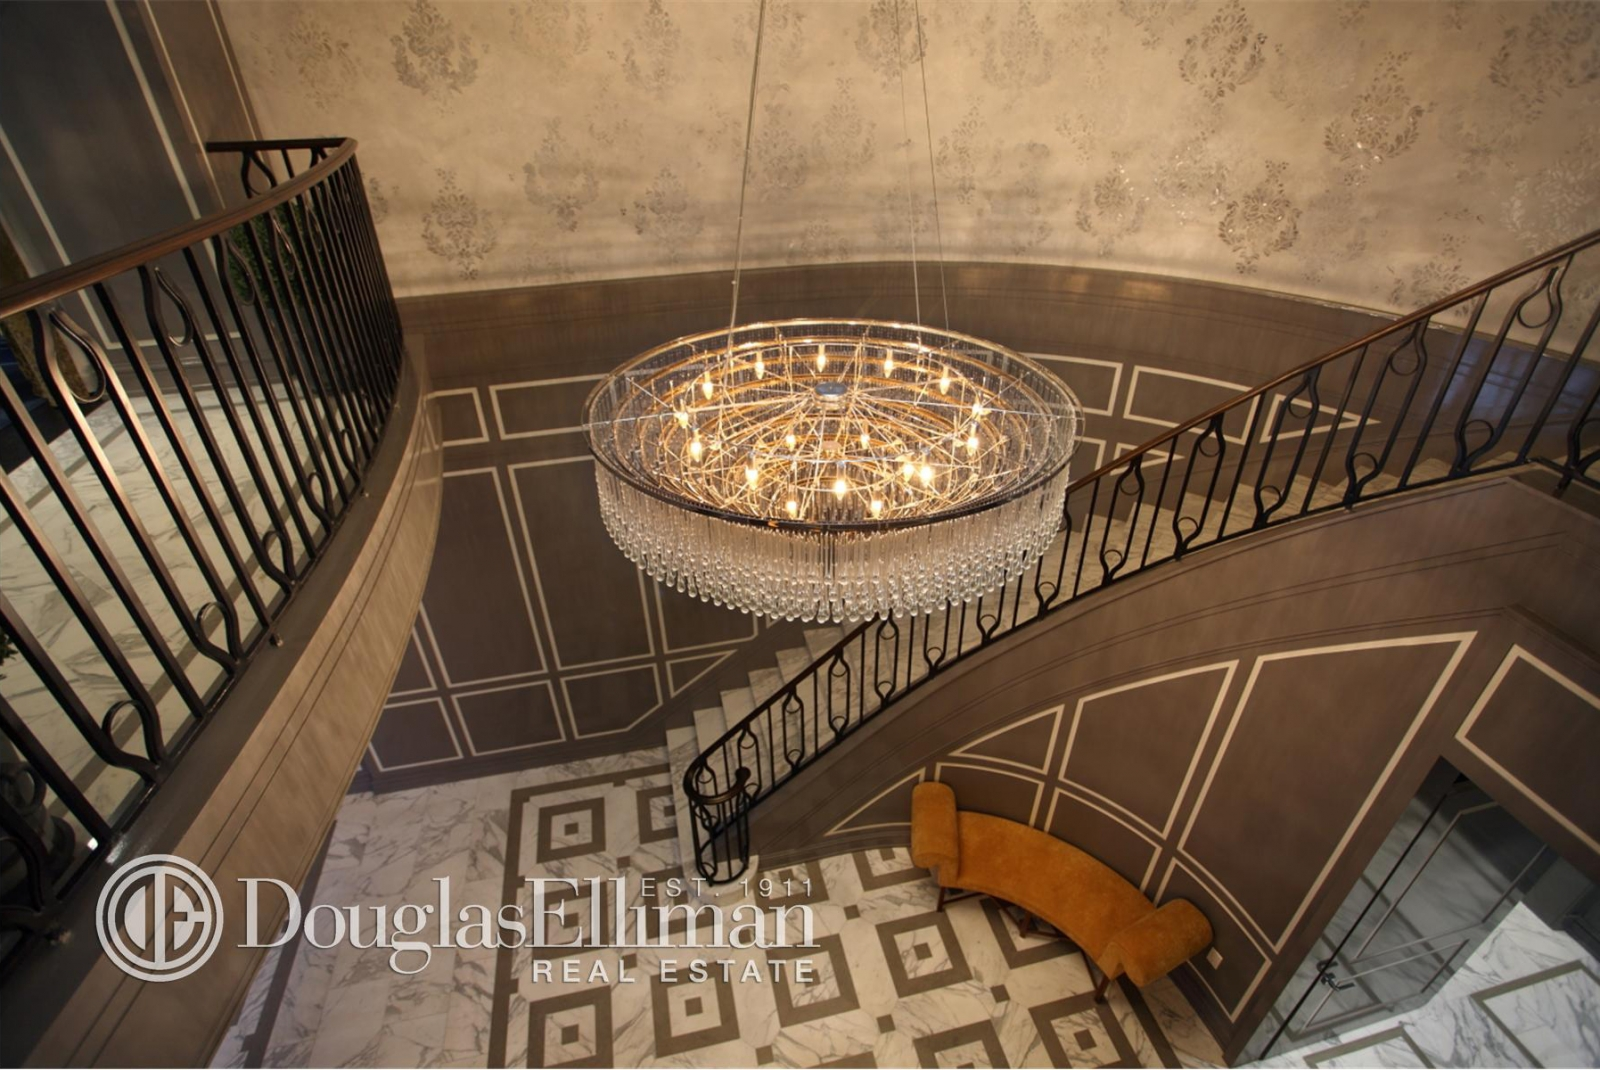 The lobby of the luxurious Touraine apartment building.